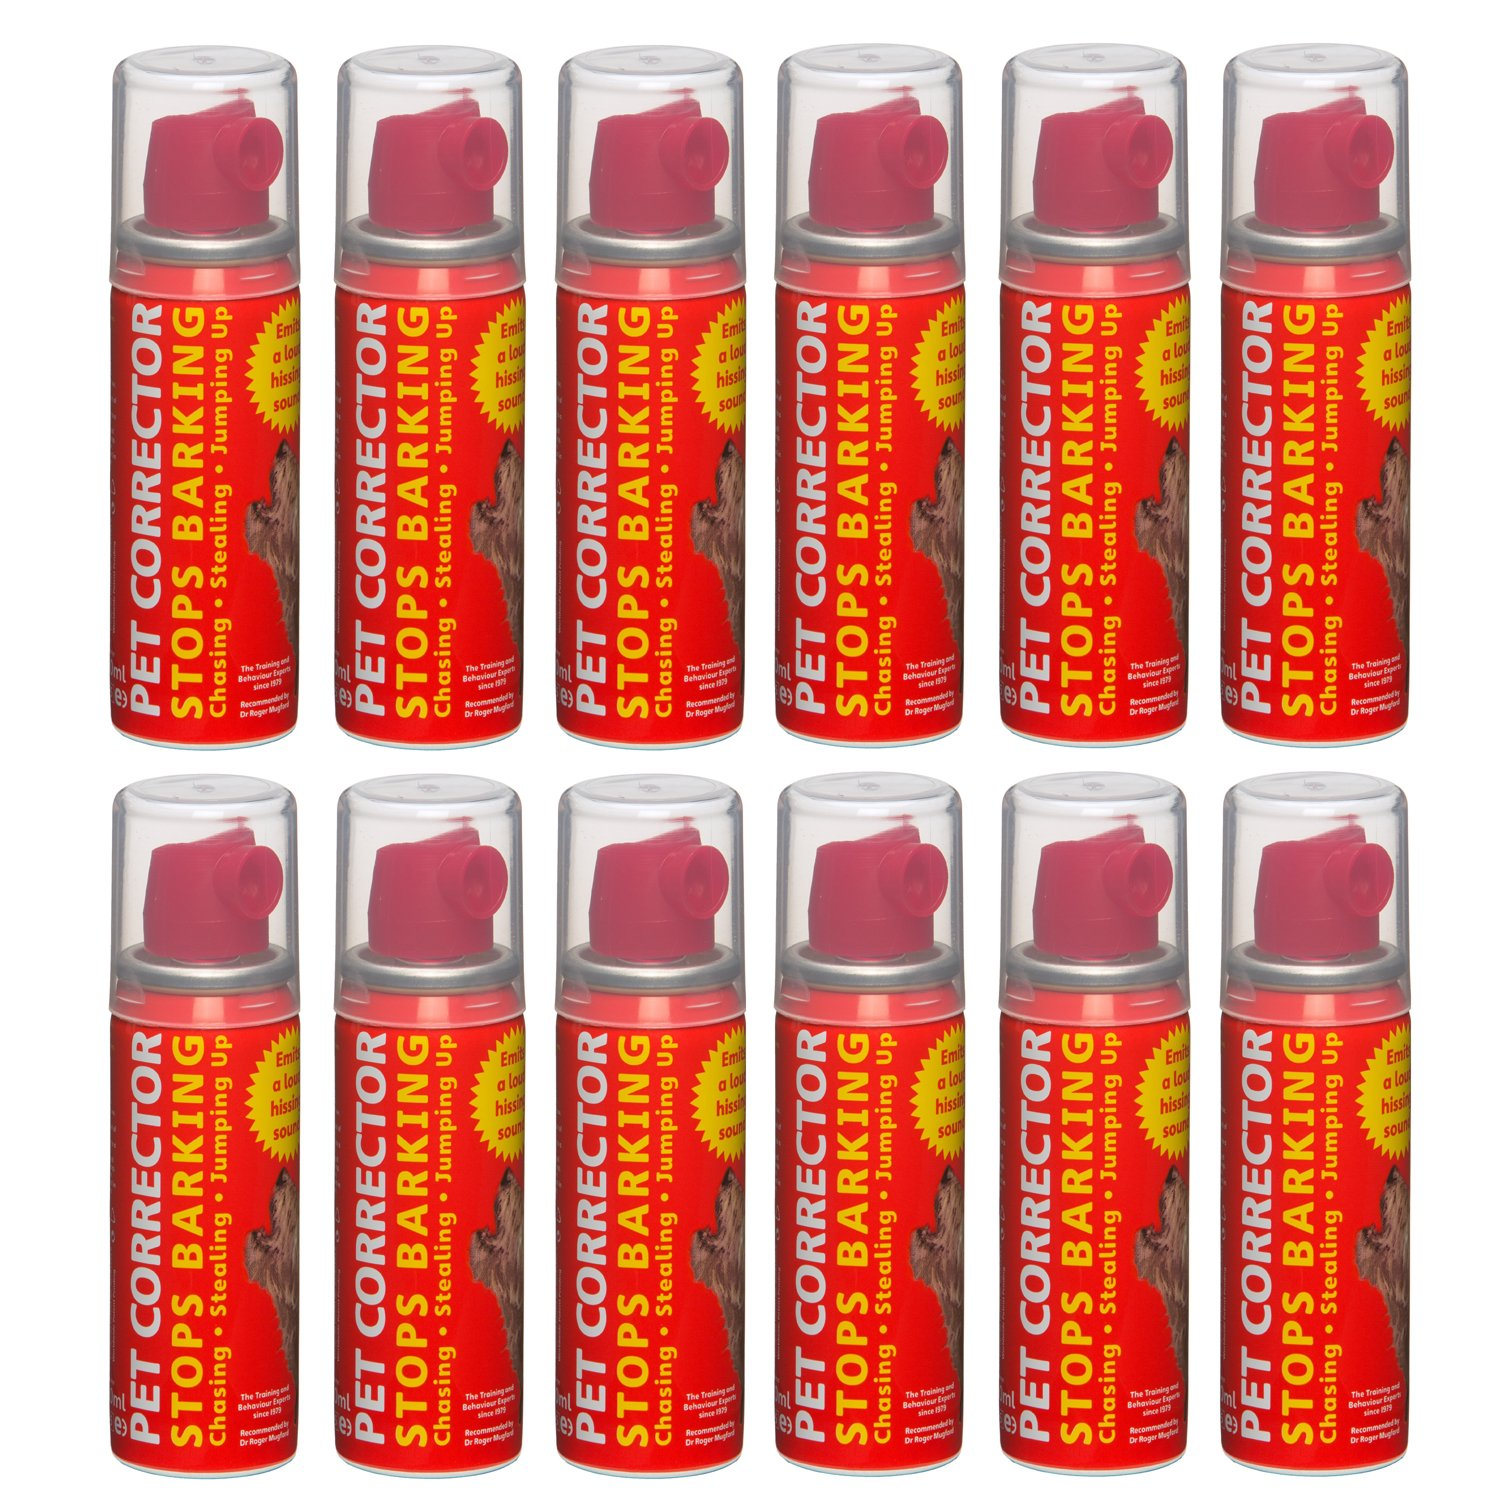 Pet Corrector - The Company of Animals - Bad Behavior and Training Aid - Quickly Stops Barking, Jumping, Digging, Chewing - Harmless and Safe- 30ml, Pack of 12 by The Company of Animals